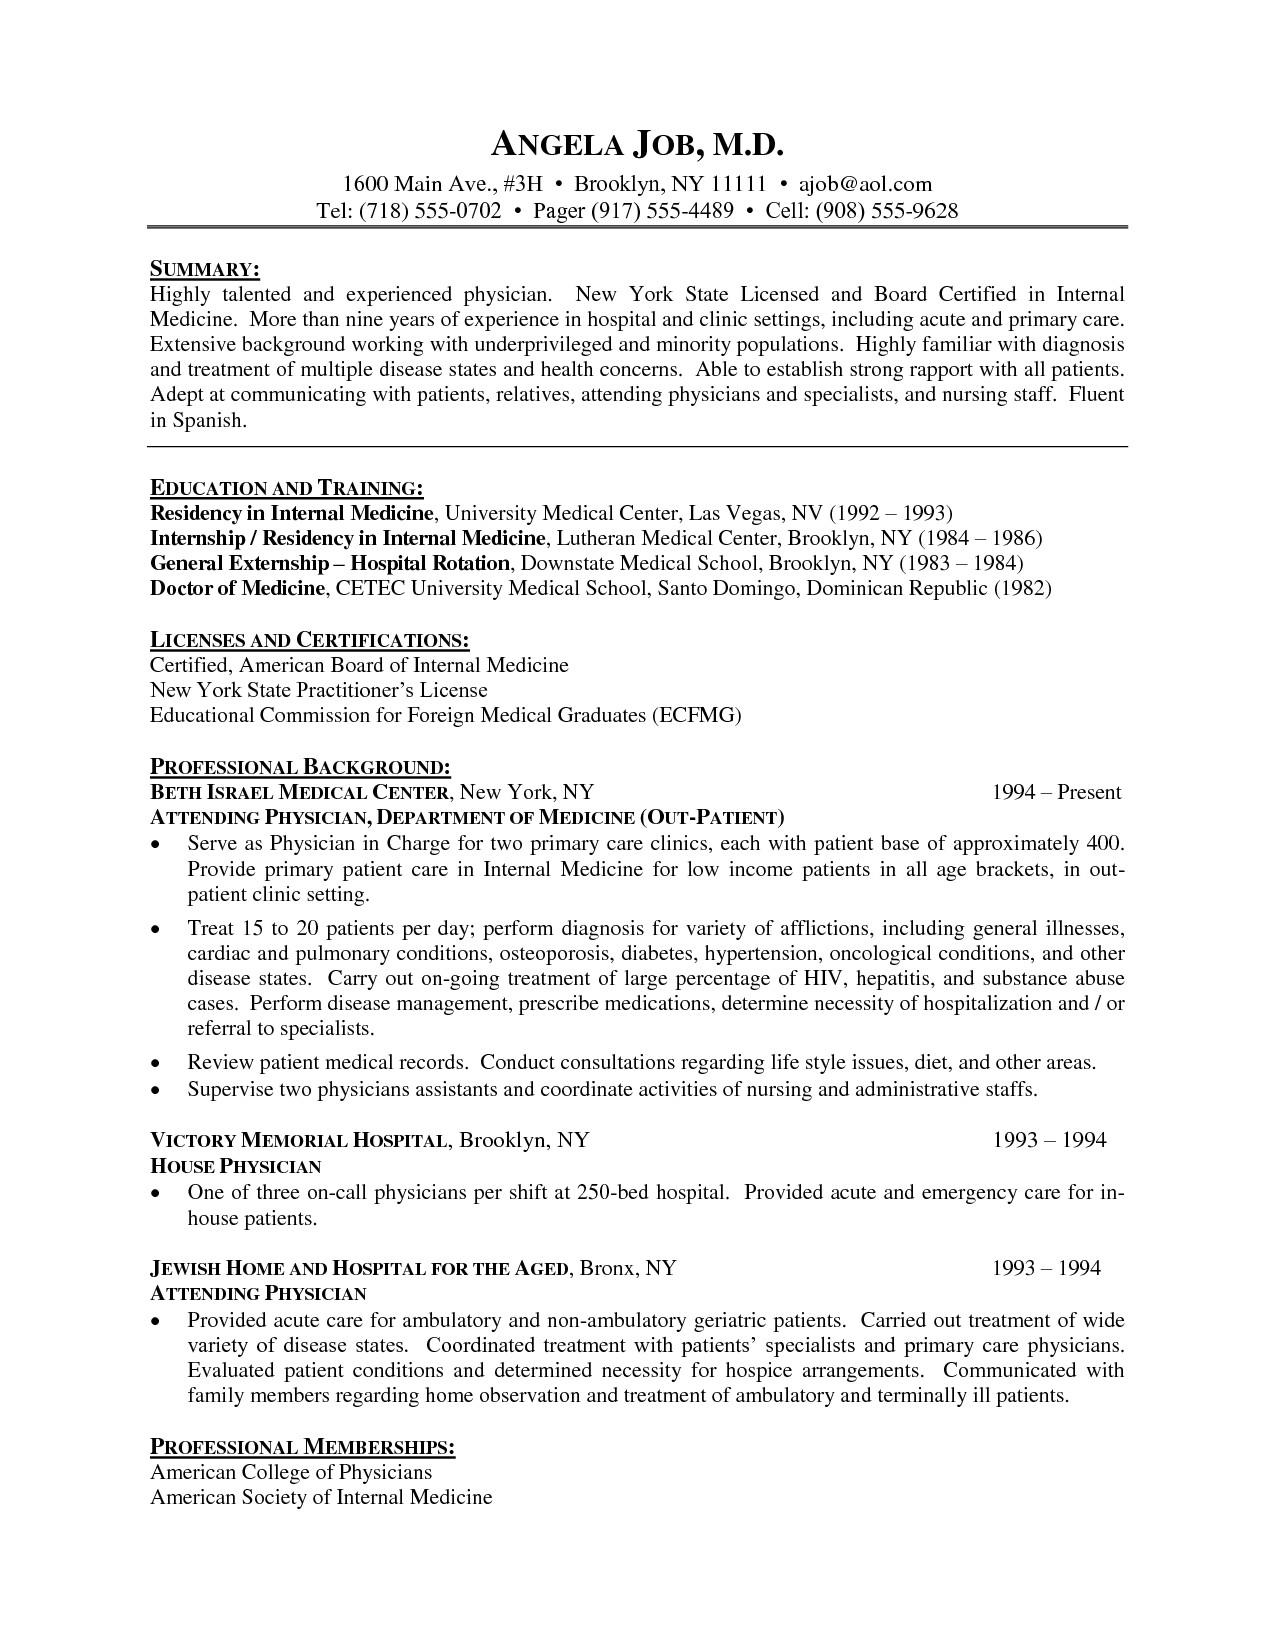 Cv Template for Physicians Resume Template Medical Doctor Cv Resume Physician Cv